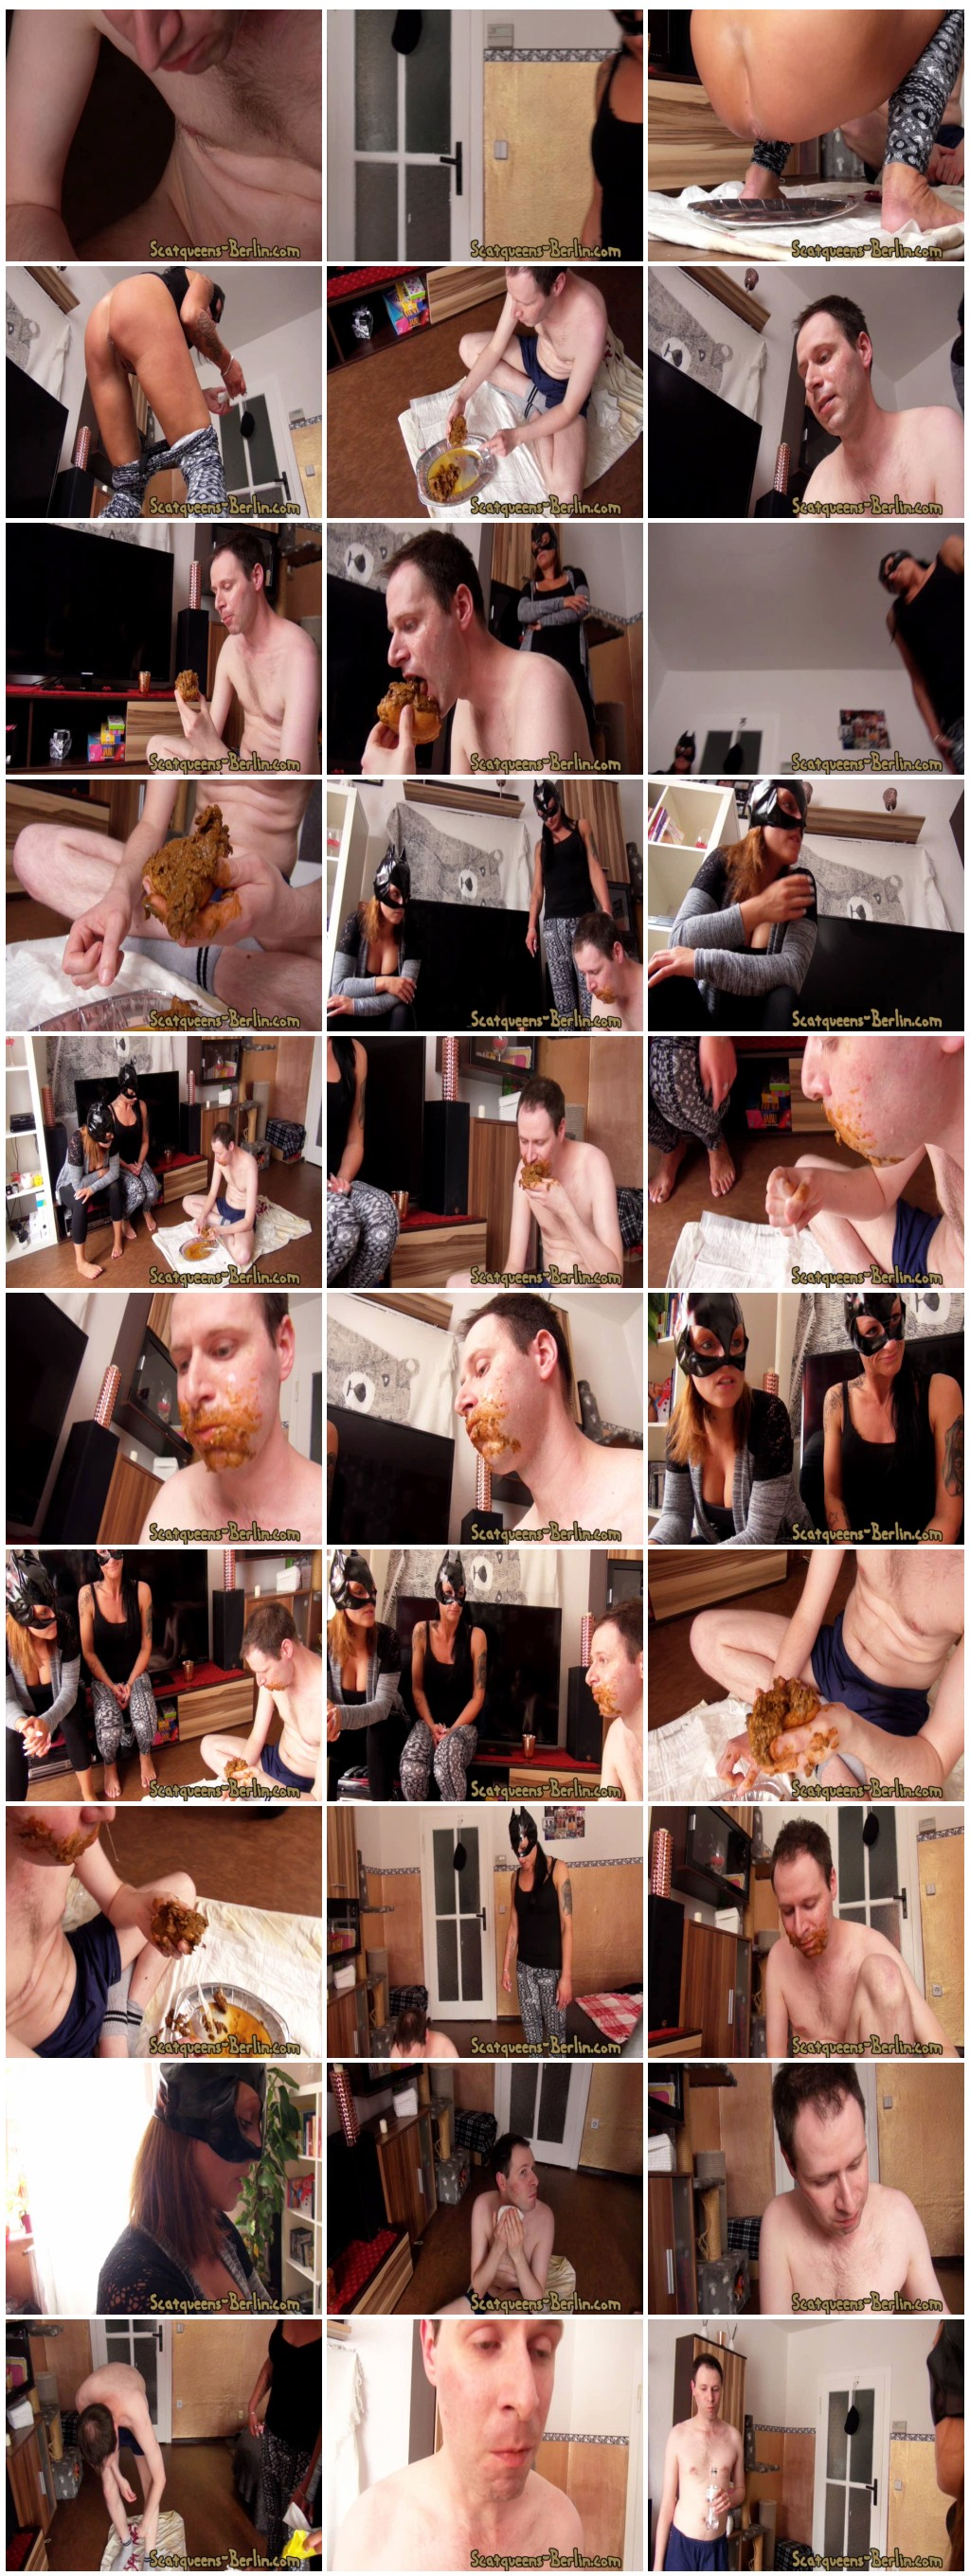 [Scatqueens-Berlin.com - Scat-Ladies.com] The Shit Face P2 [Scat, Piss, Vomit, Spitting, Facesitting, Whipping, Trampling, Femdom, Humiliation, Toilet Slavery]